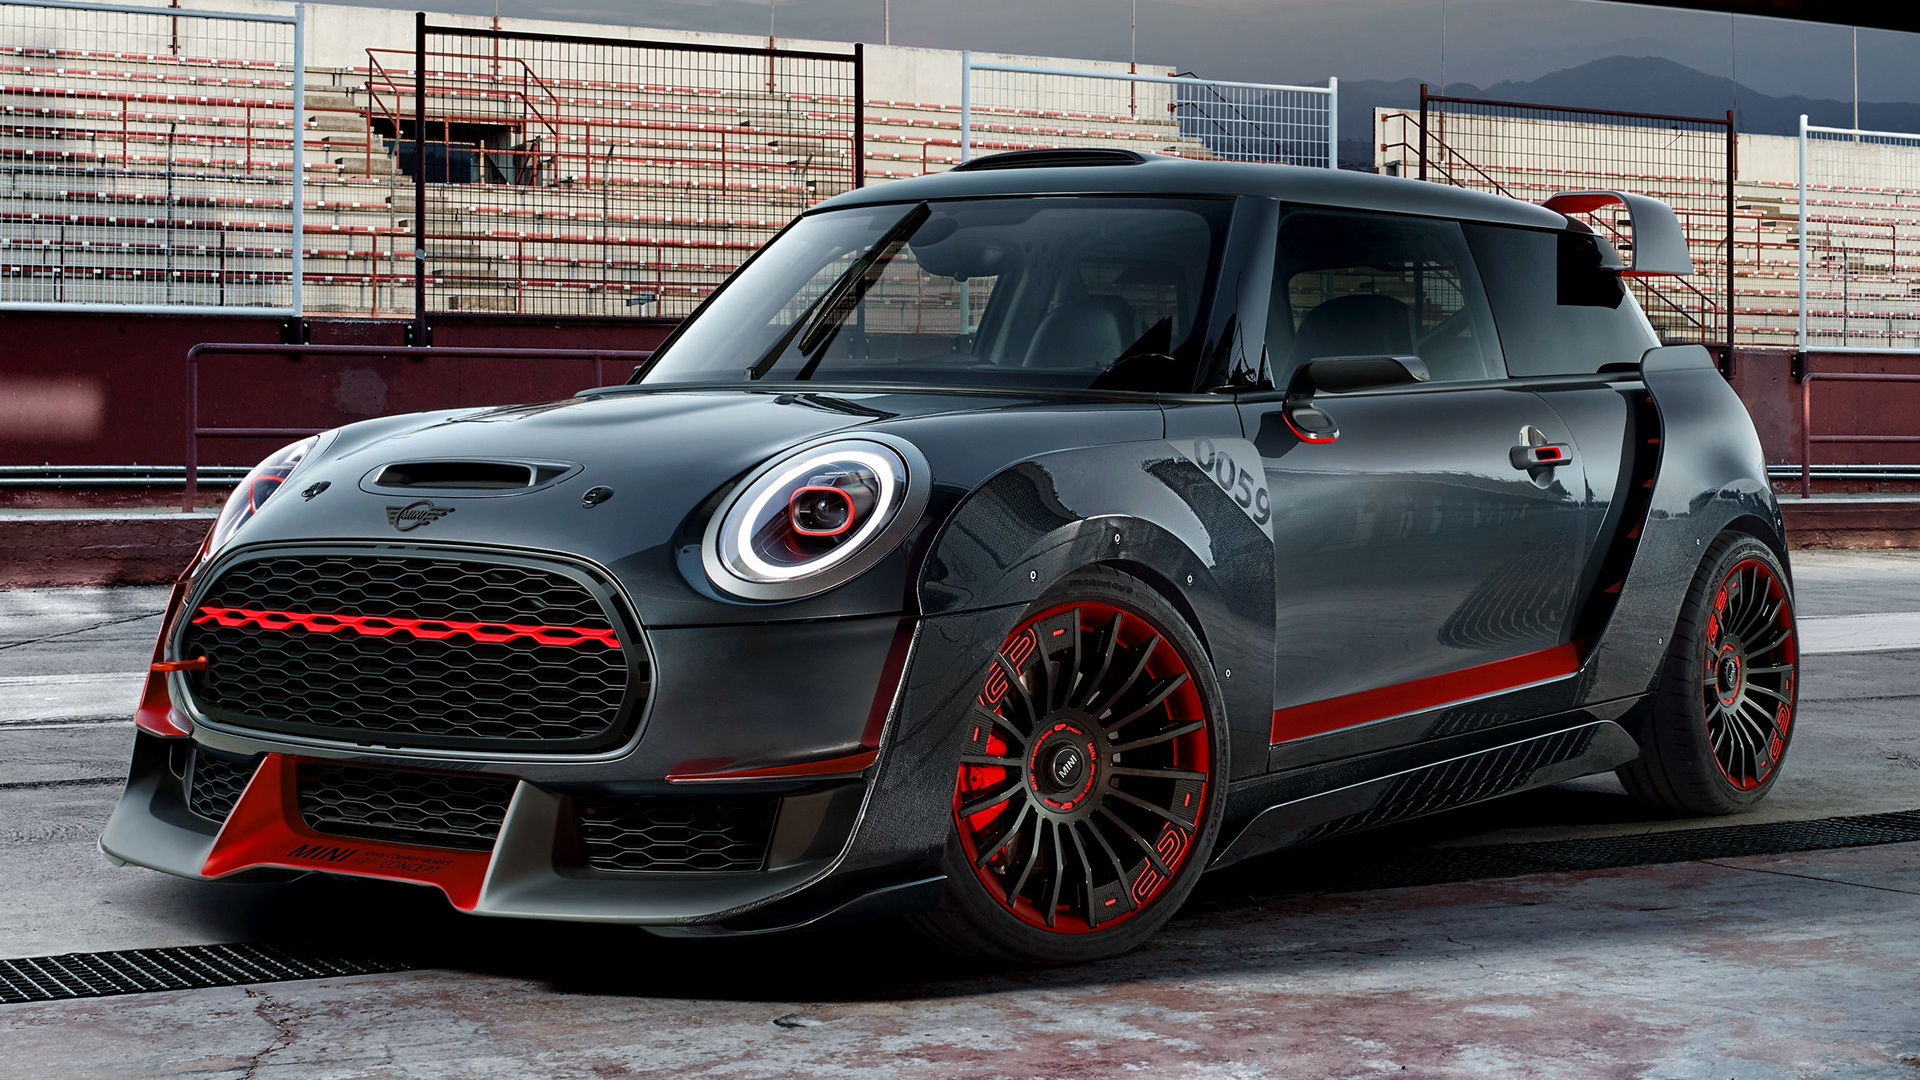 2017 Mini John Cooper Works GP Concept HD Wallpaper